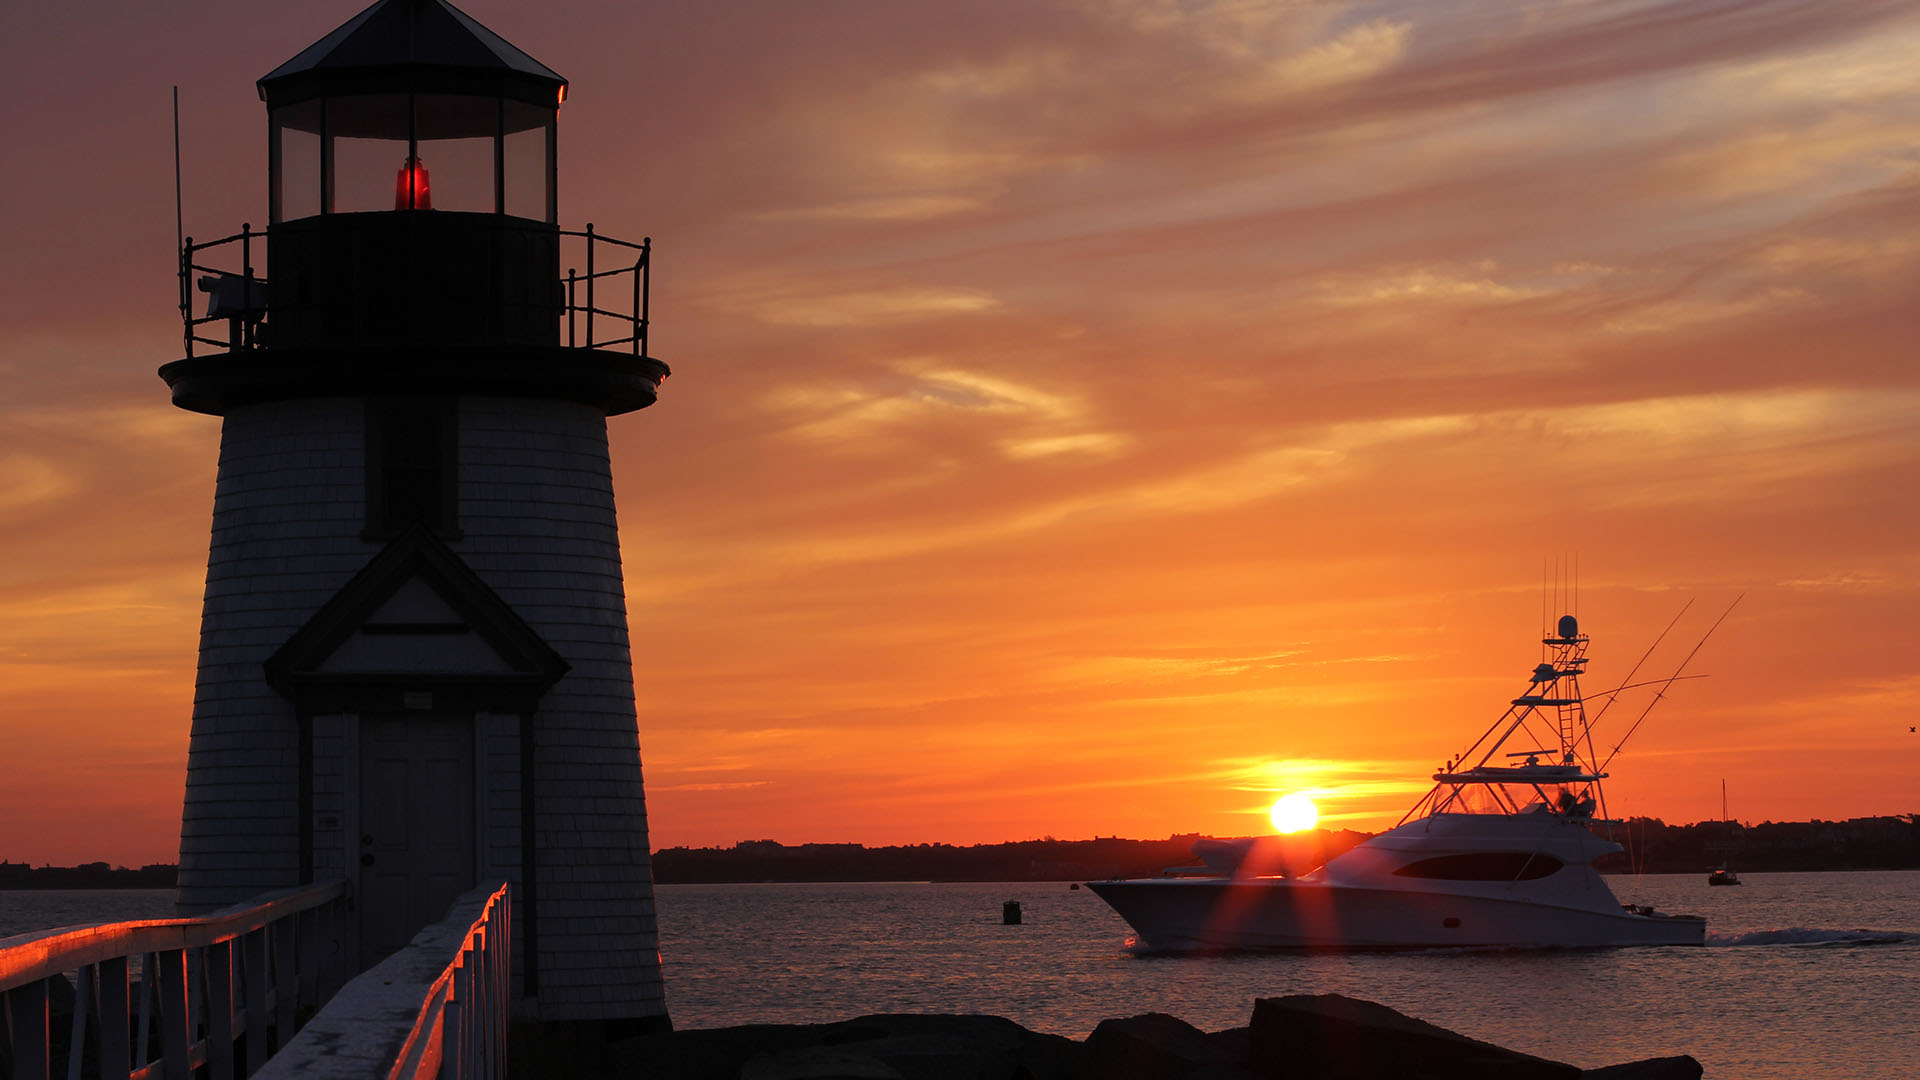 AvYachts Destination - The New England